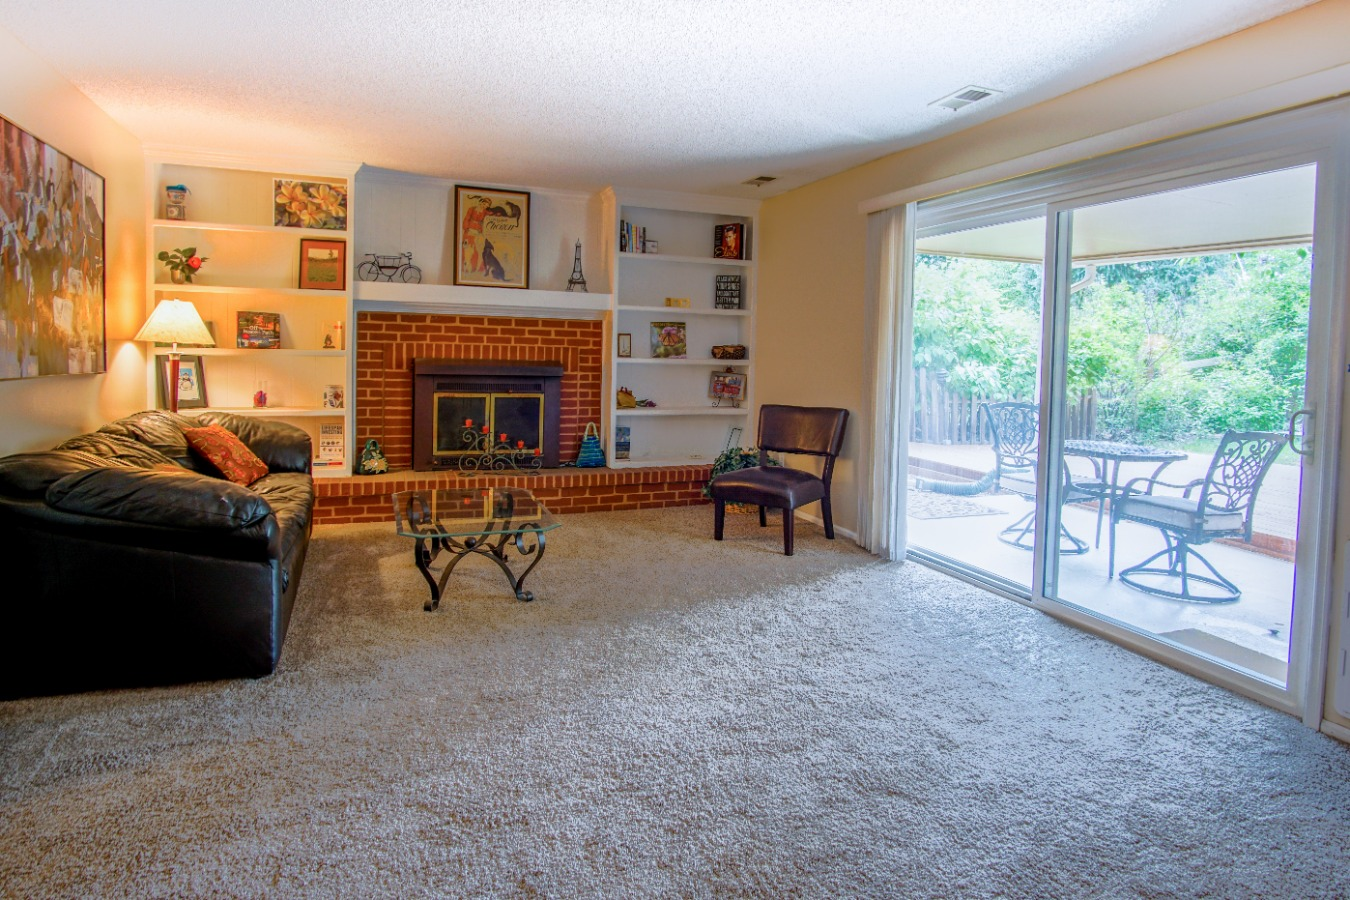 Family room has built in bookcases and fireplace